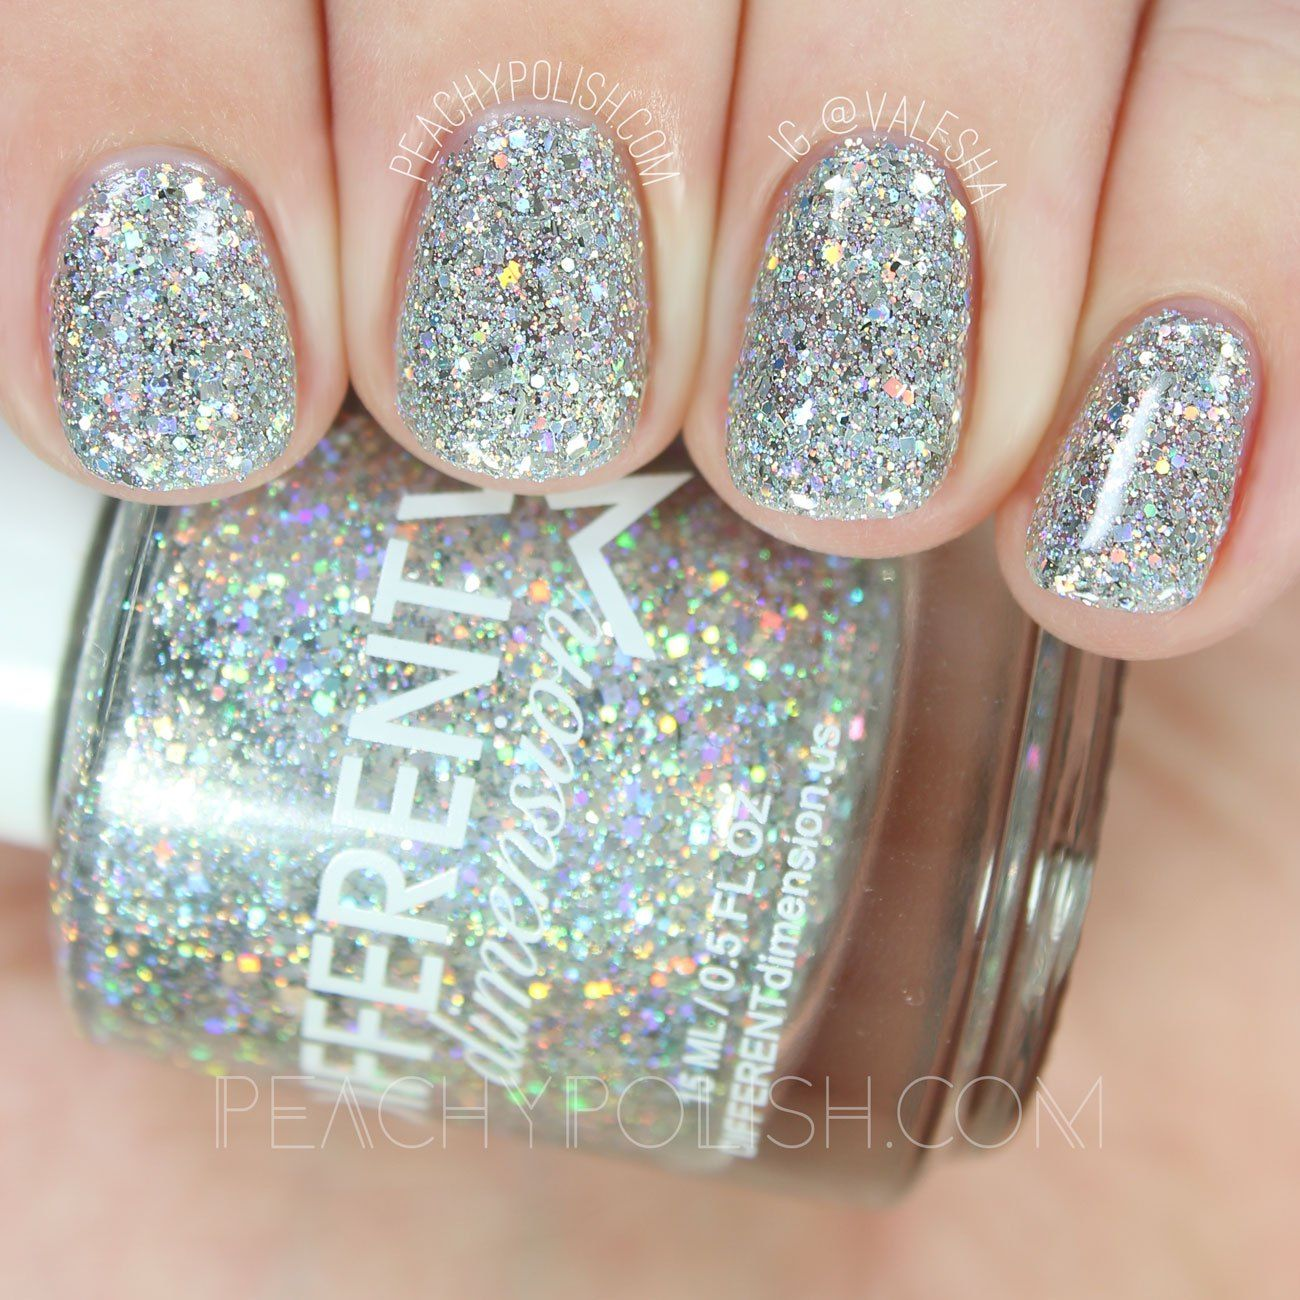 Different Dimension Glitter Bug | Let Them Eat Glitter: YWP Collab | Peachy Polish